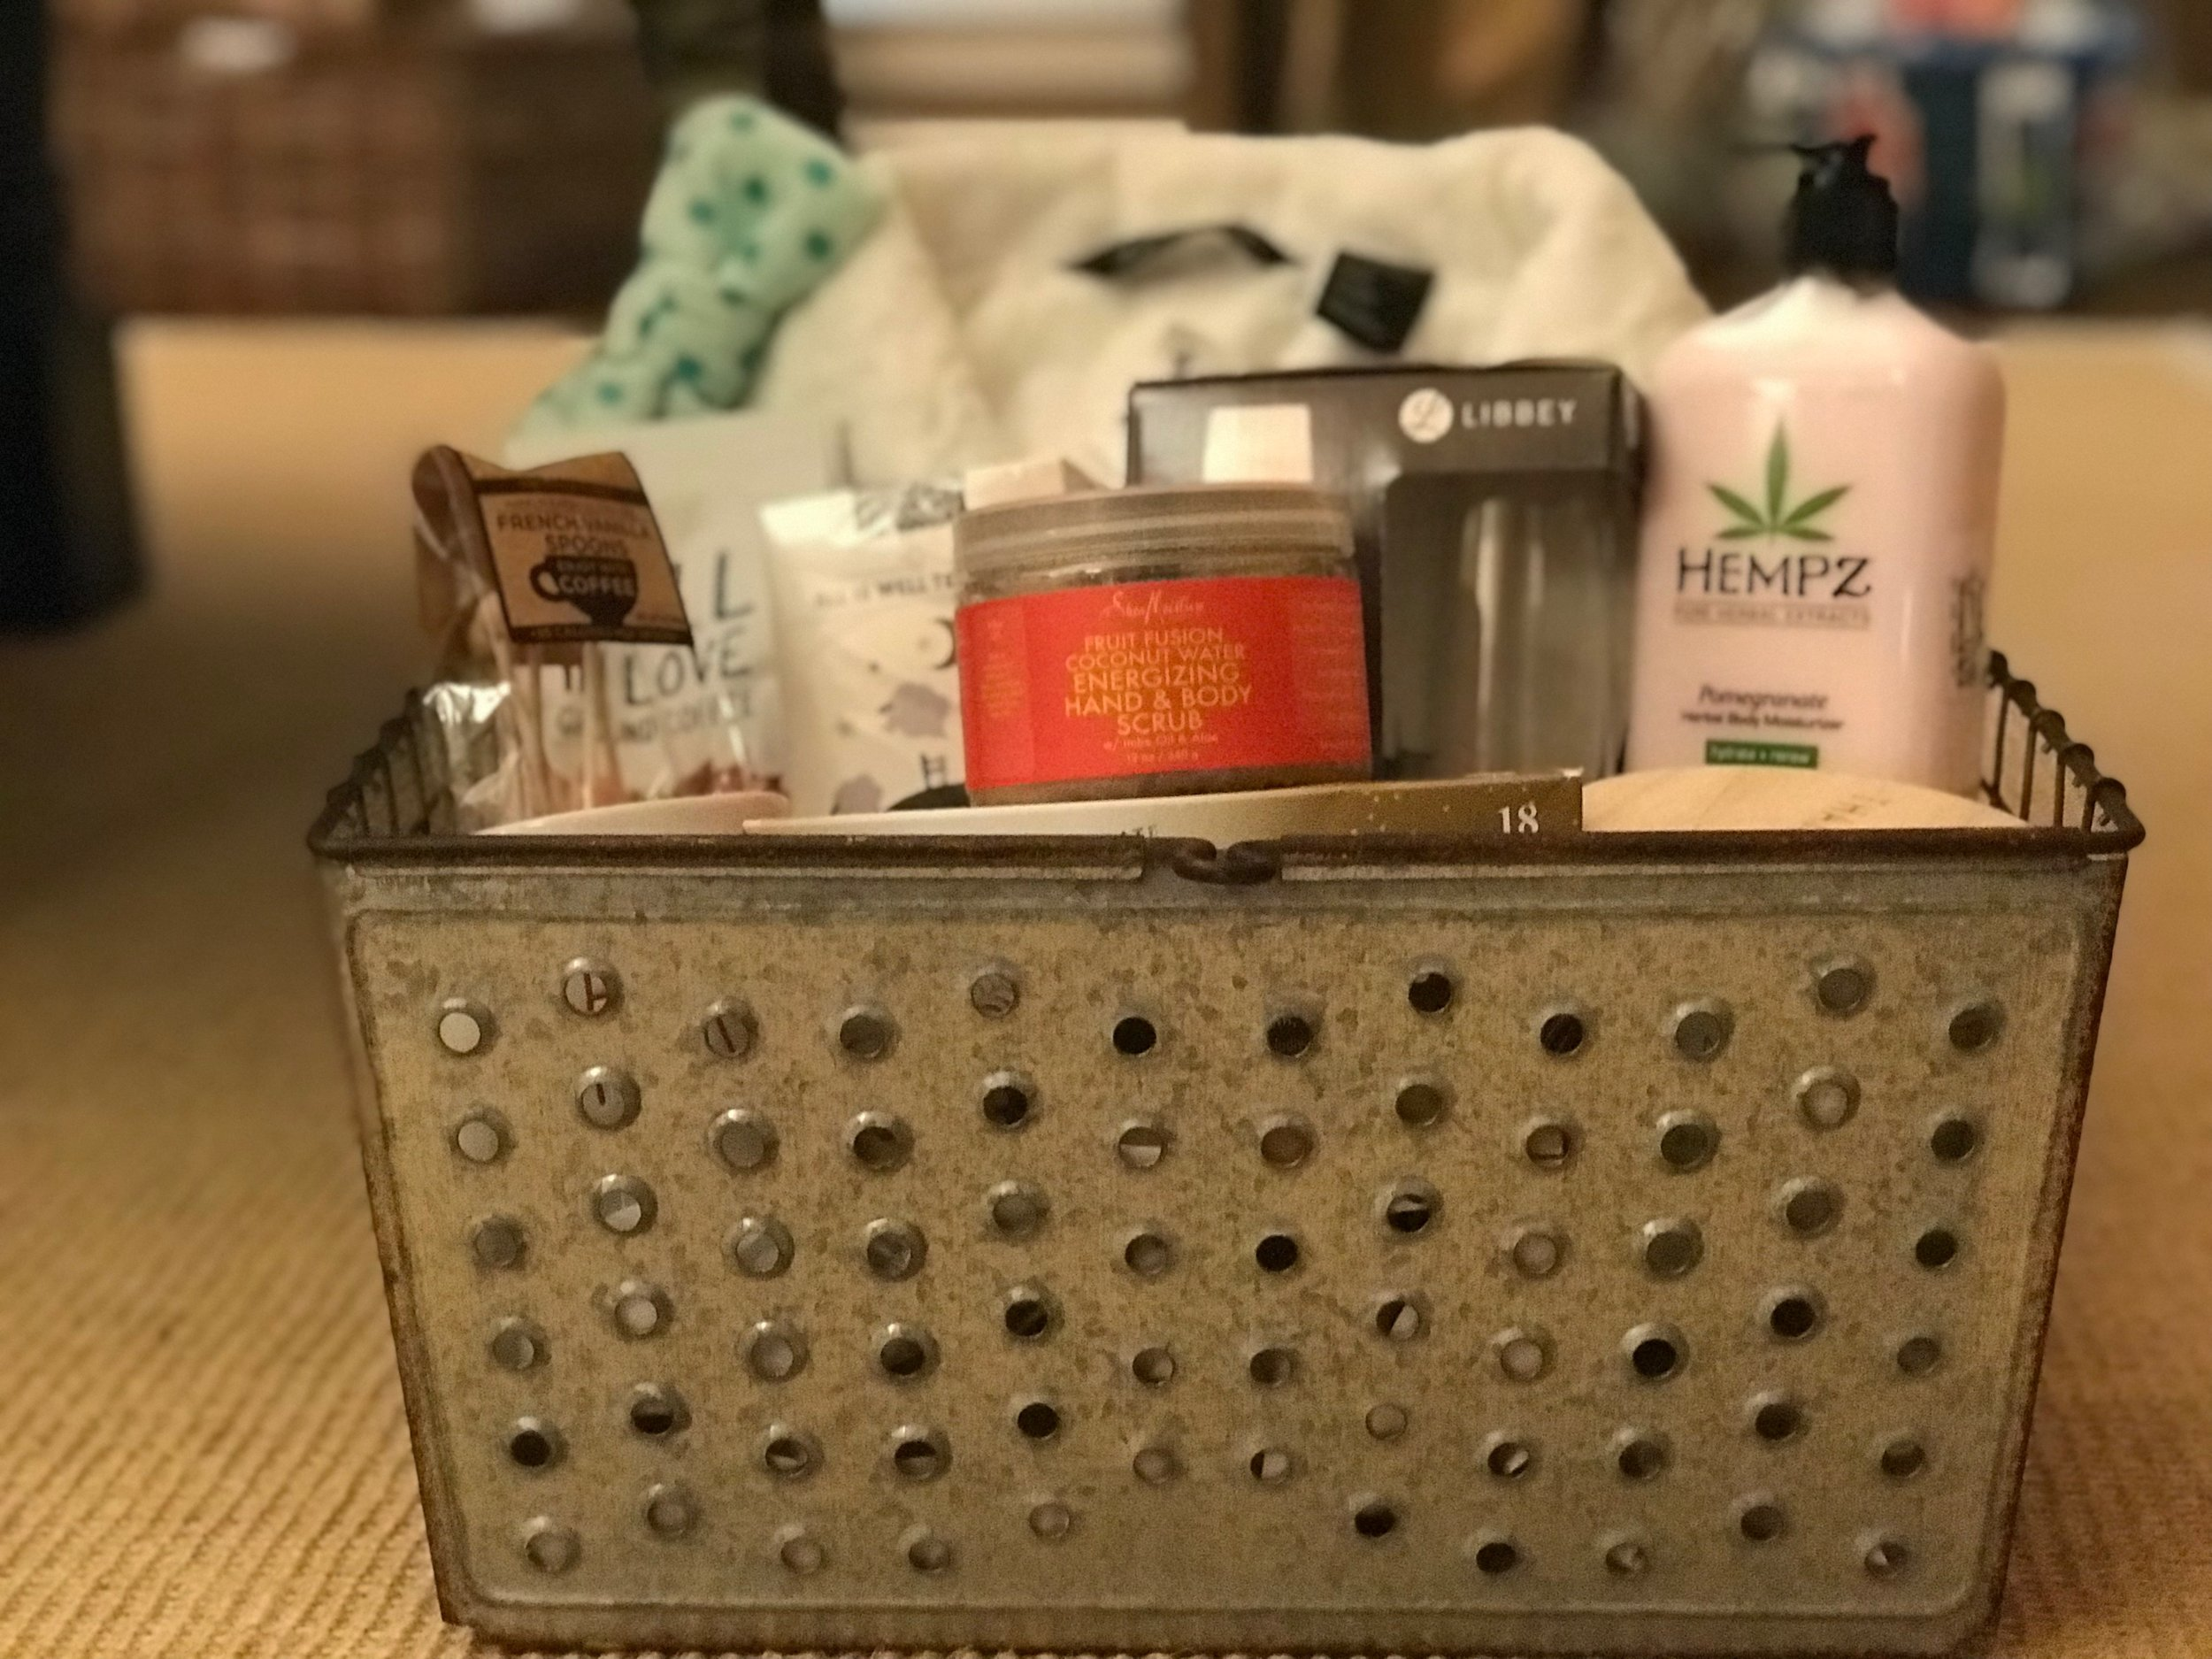 AT HOME SPA DAY BASKET   Pamper yourself in the comfort of your own home with this luxurious basket of goodies. Included are a cozy robe, make up/face wash headband, body scrub and lotion, coffee with mug and spoons, herbal tea, sparkling grape juice with stemless flute glasses, and Belgian chocolate pralines in a cute metal storage basket.  DONOR: 3rd Grade Classes VALUE: $95